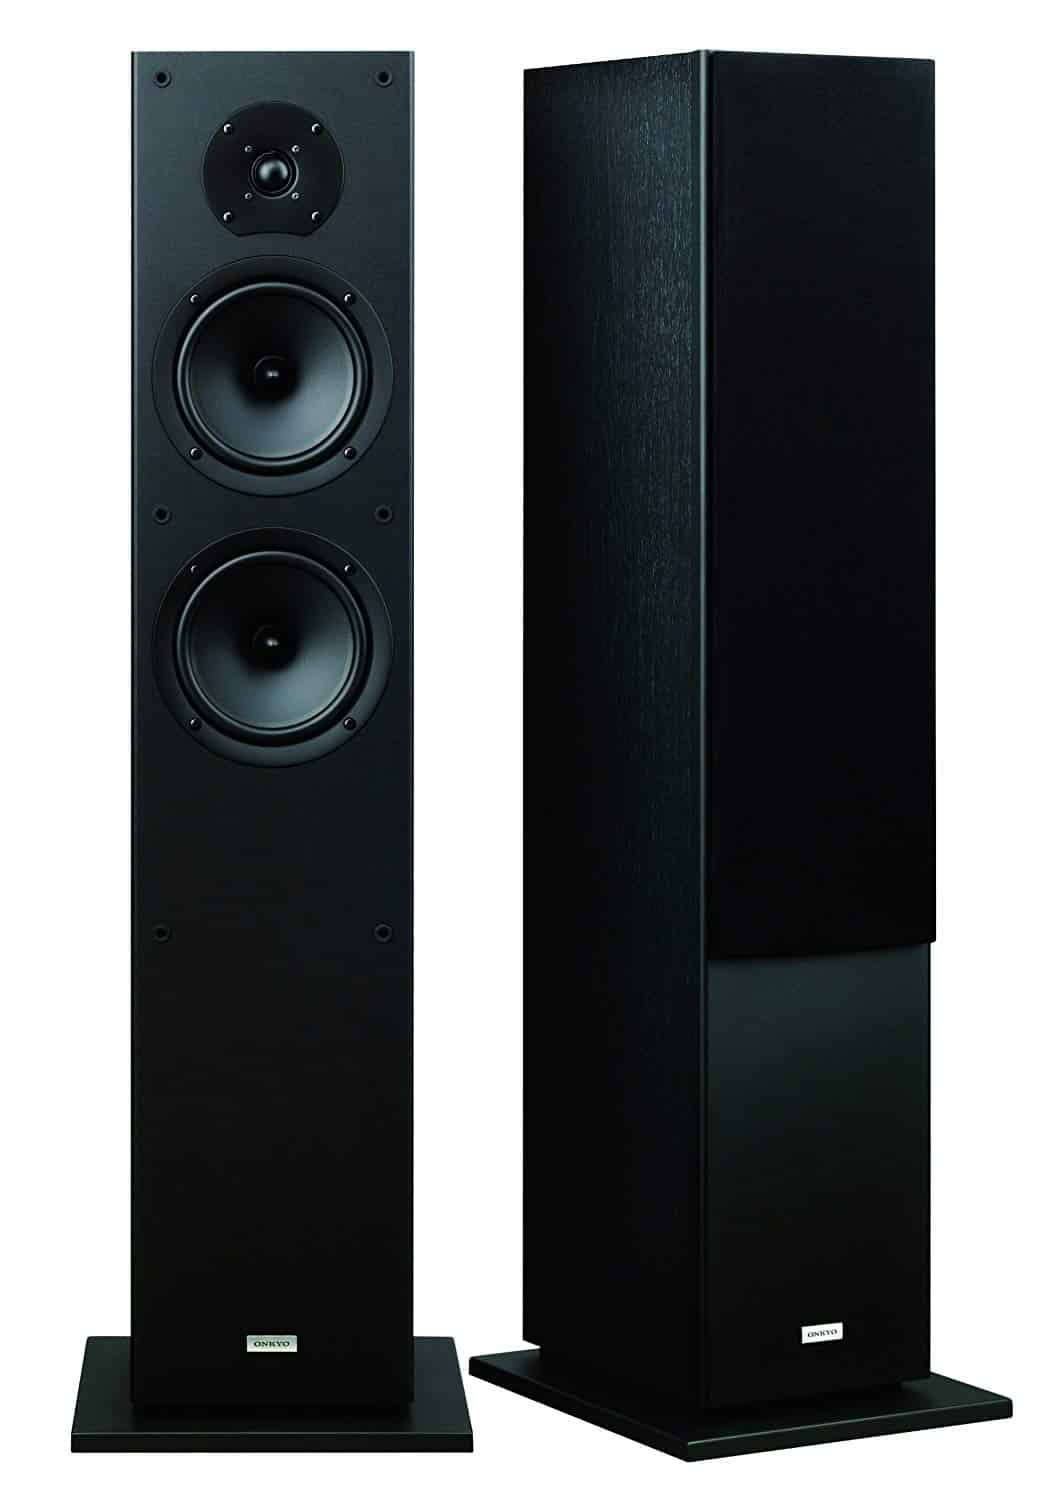 Onkyo SKF-4800-2-Way Bass Reflex Floor-Standing Speakers